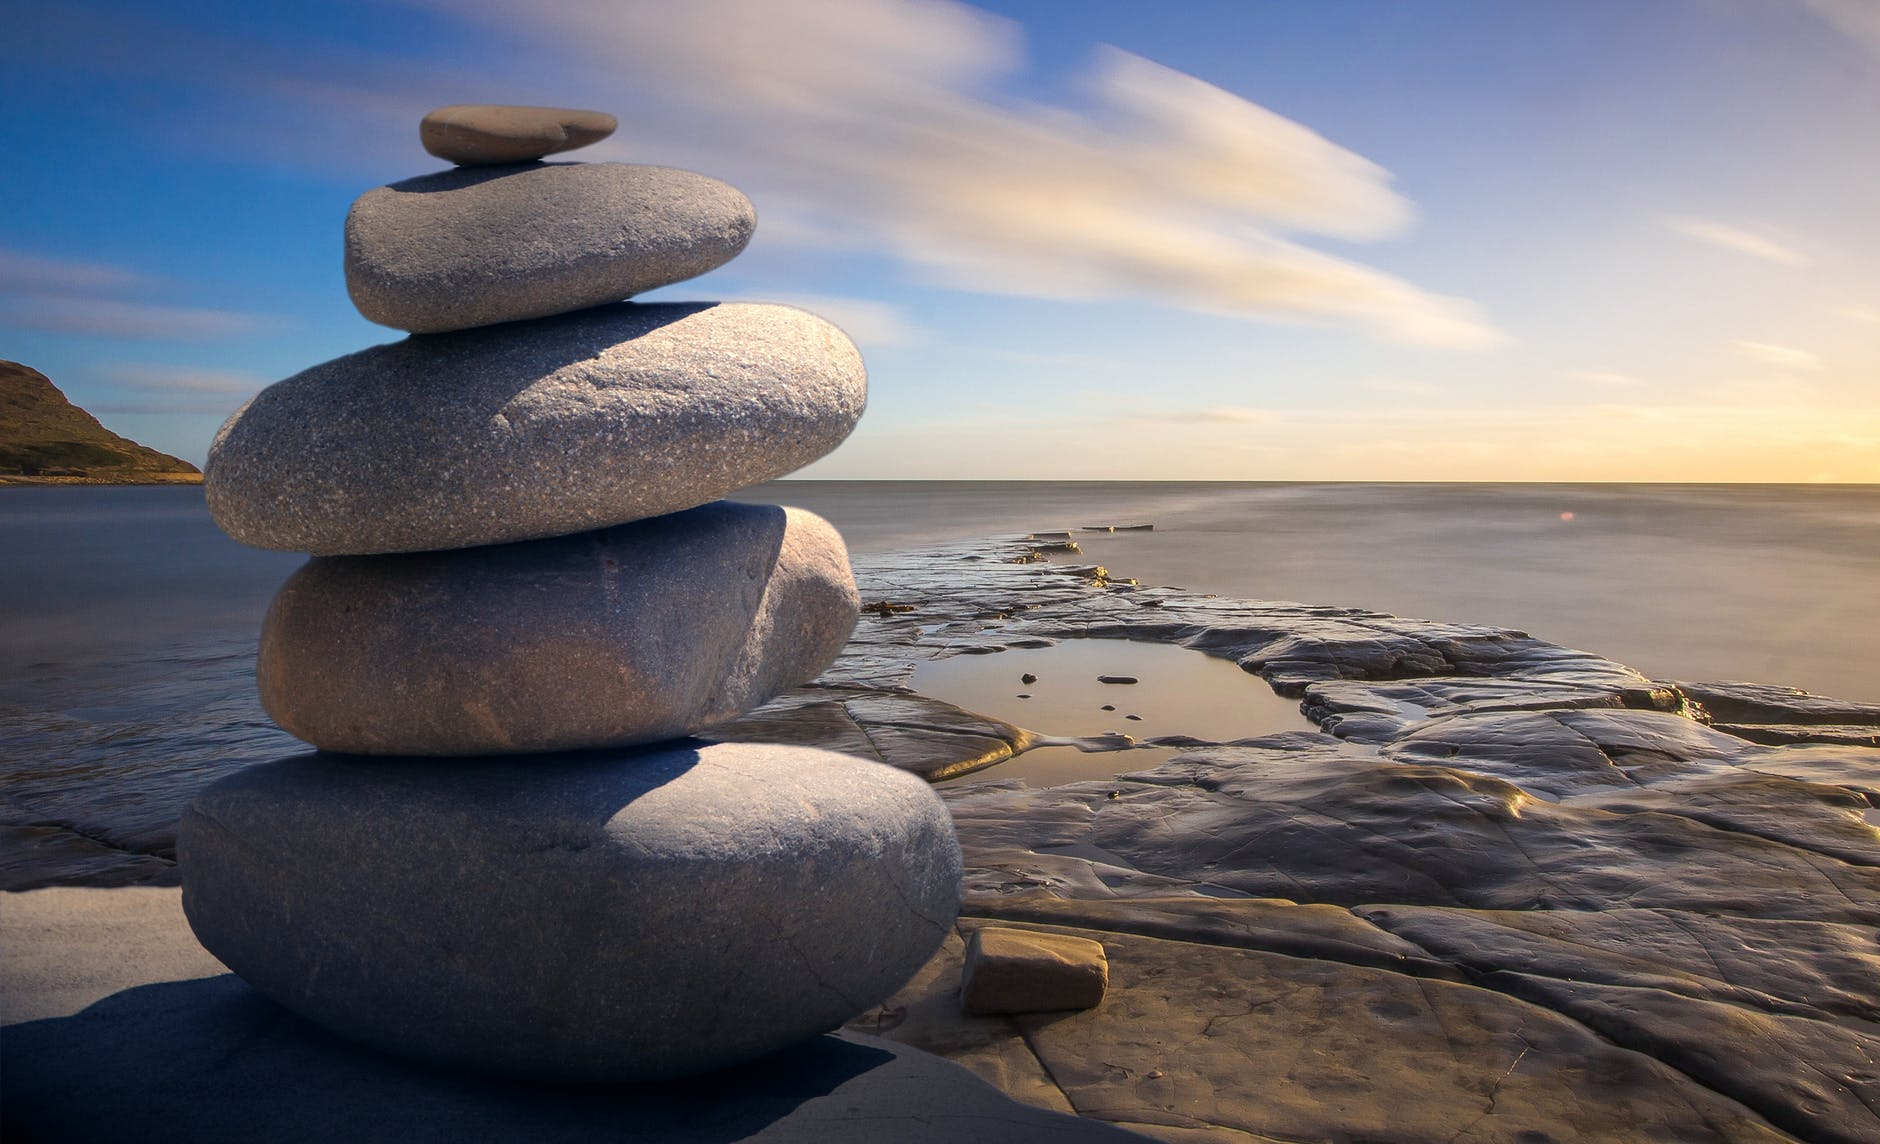 Stones stacked on top of one another to form a tower near an ocean shore